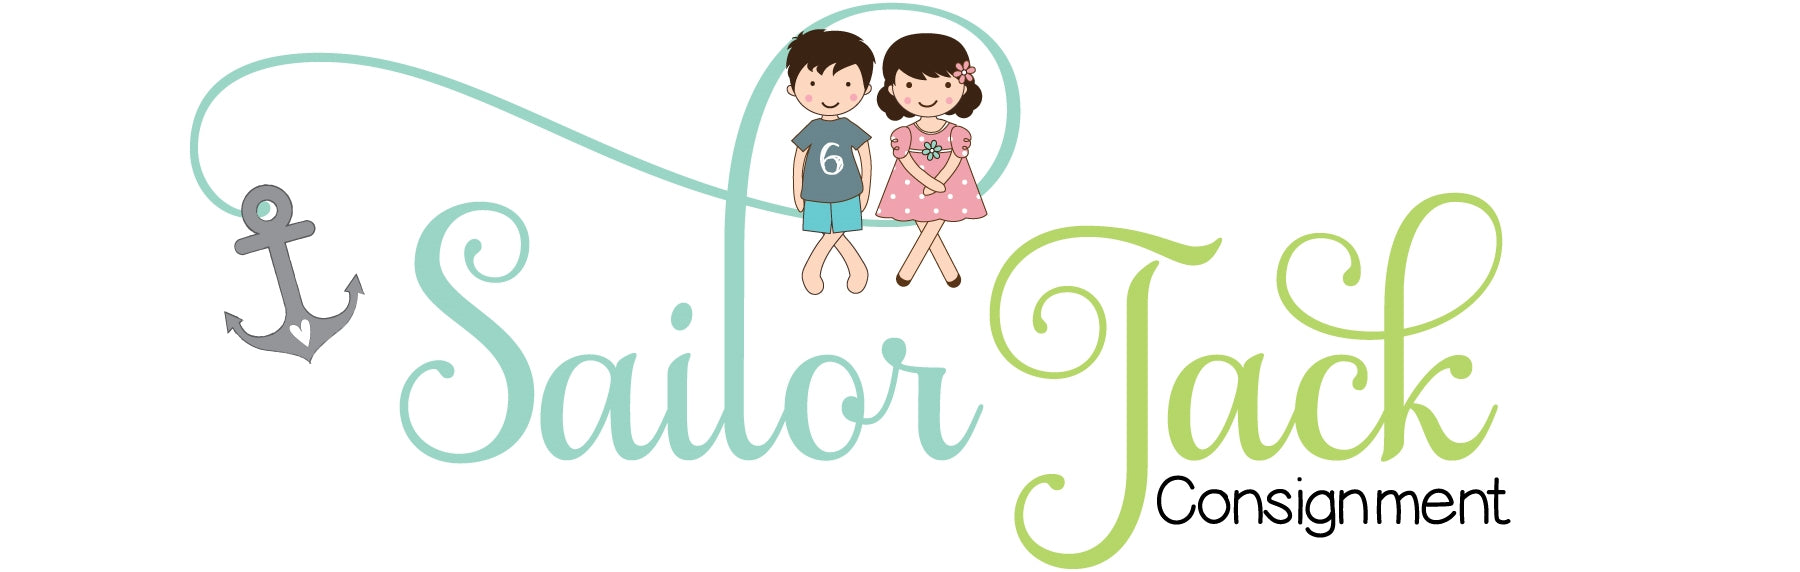 Sailor Jack Logo